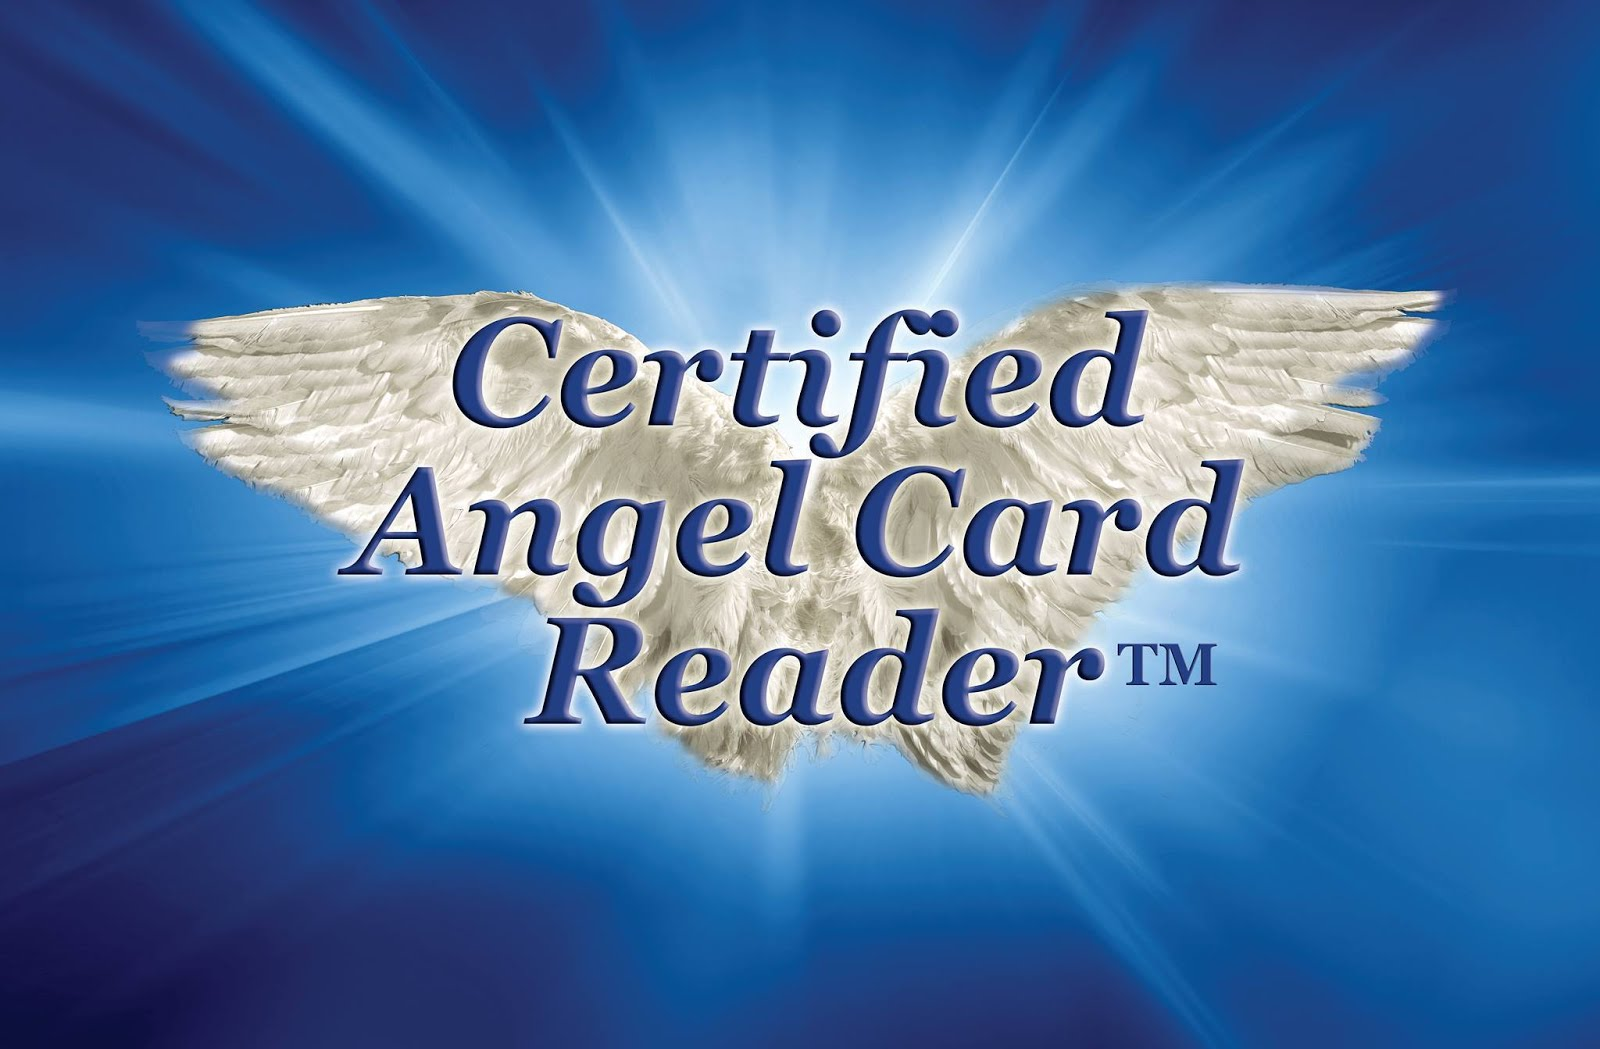 Certified Oracle Card Reader